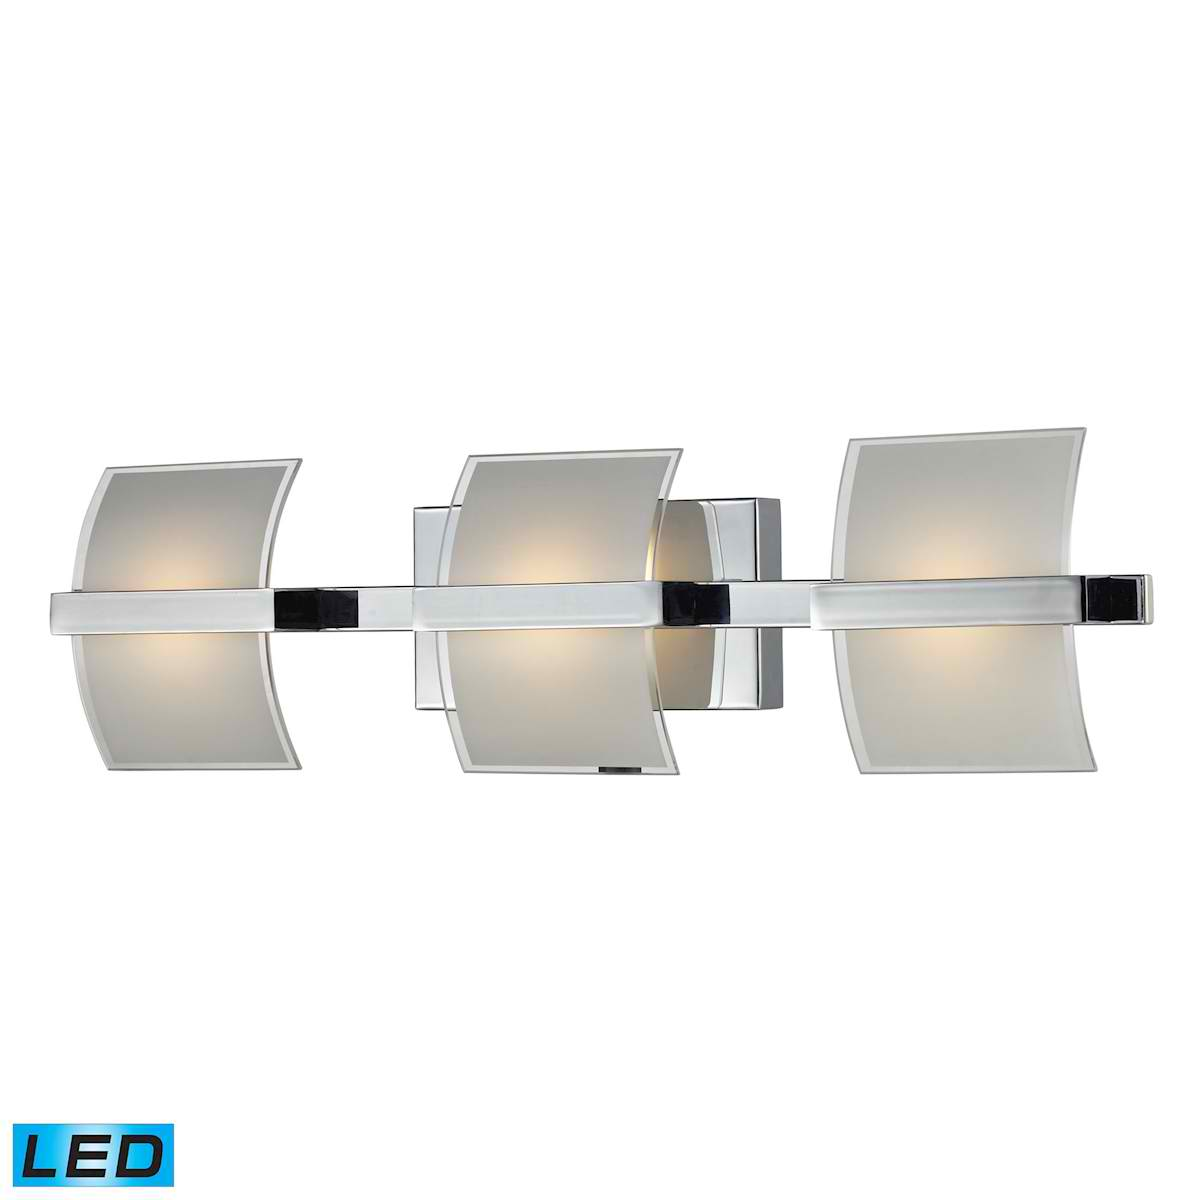 LED 3 5W Glass Wall Lamp